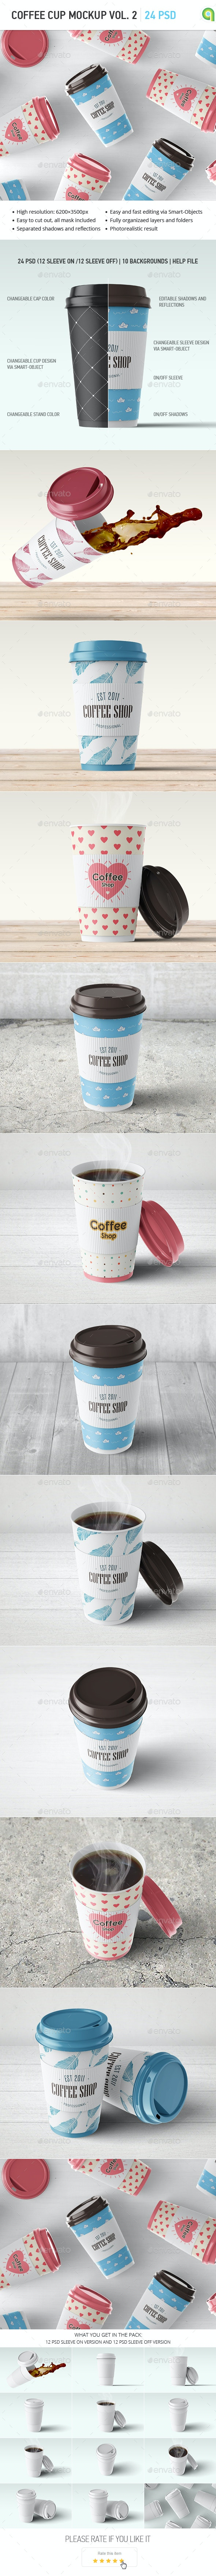 Coffee Cup Mock-up Vol.2 - Food and Drink Packaging